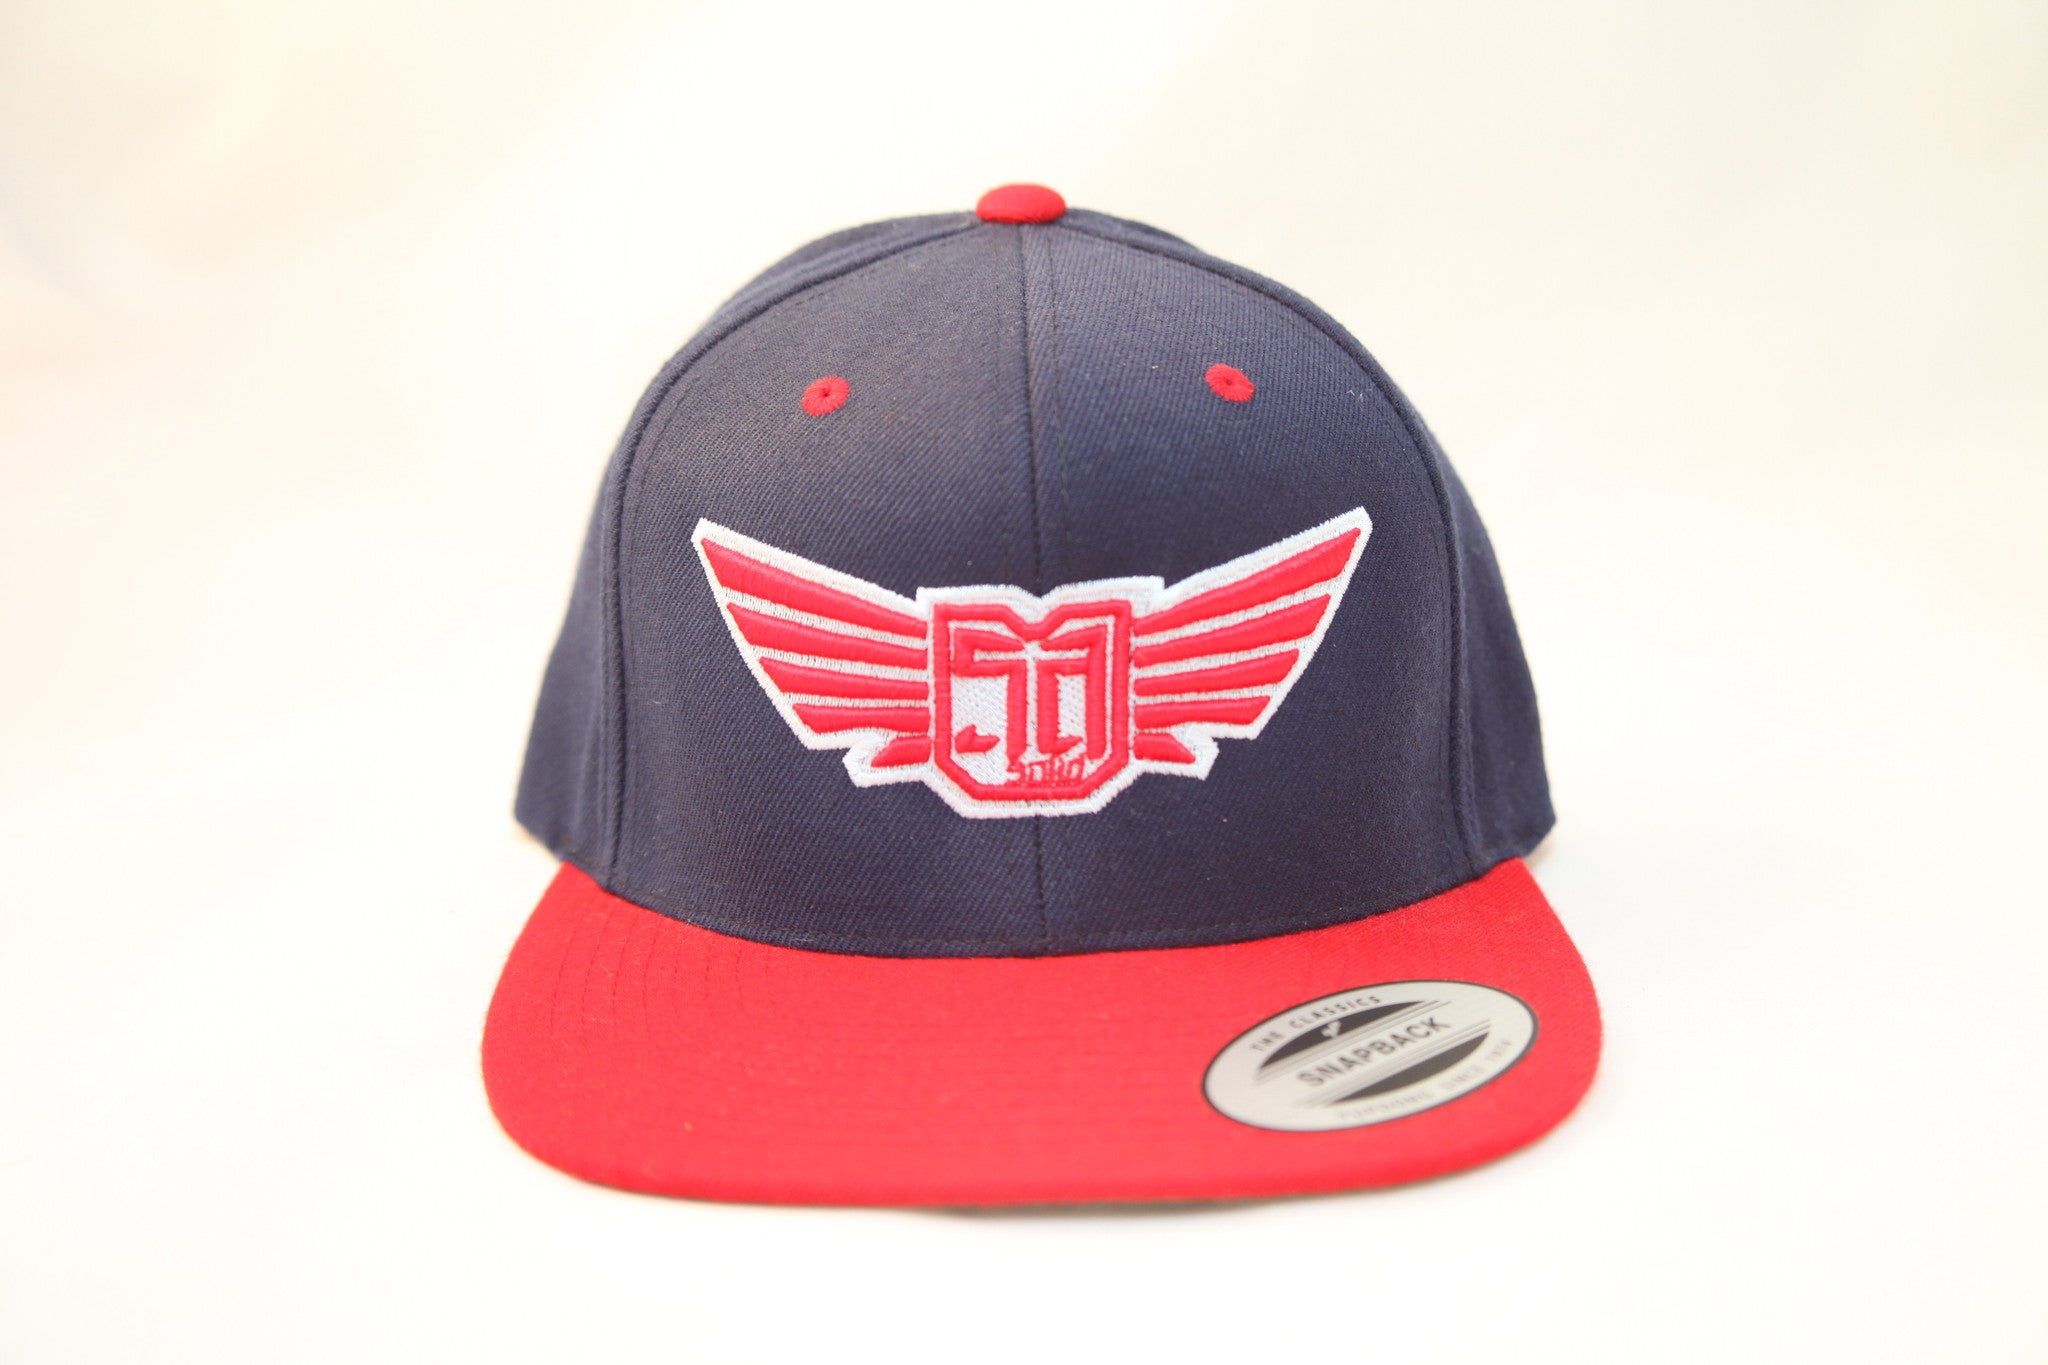 AV8 - FLEXFIT SNAP BACK HAT - NAVY / RED - WHT / RED LOGO